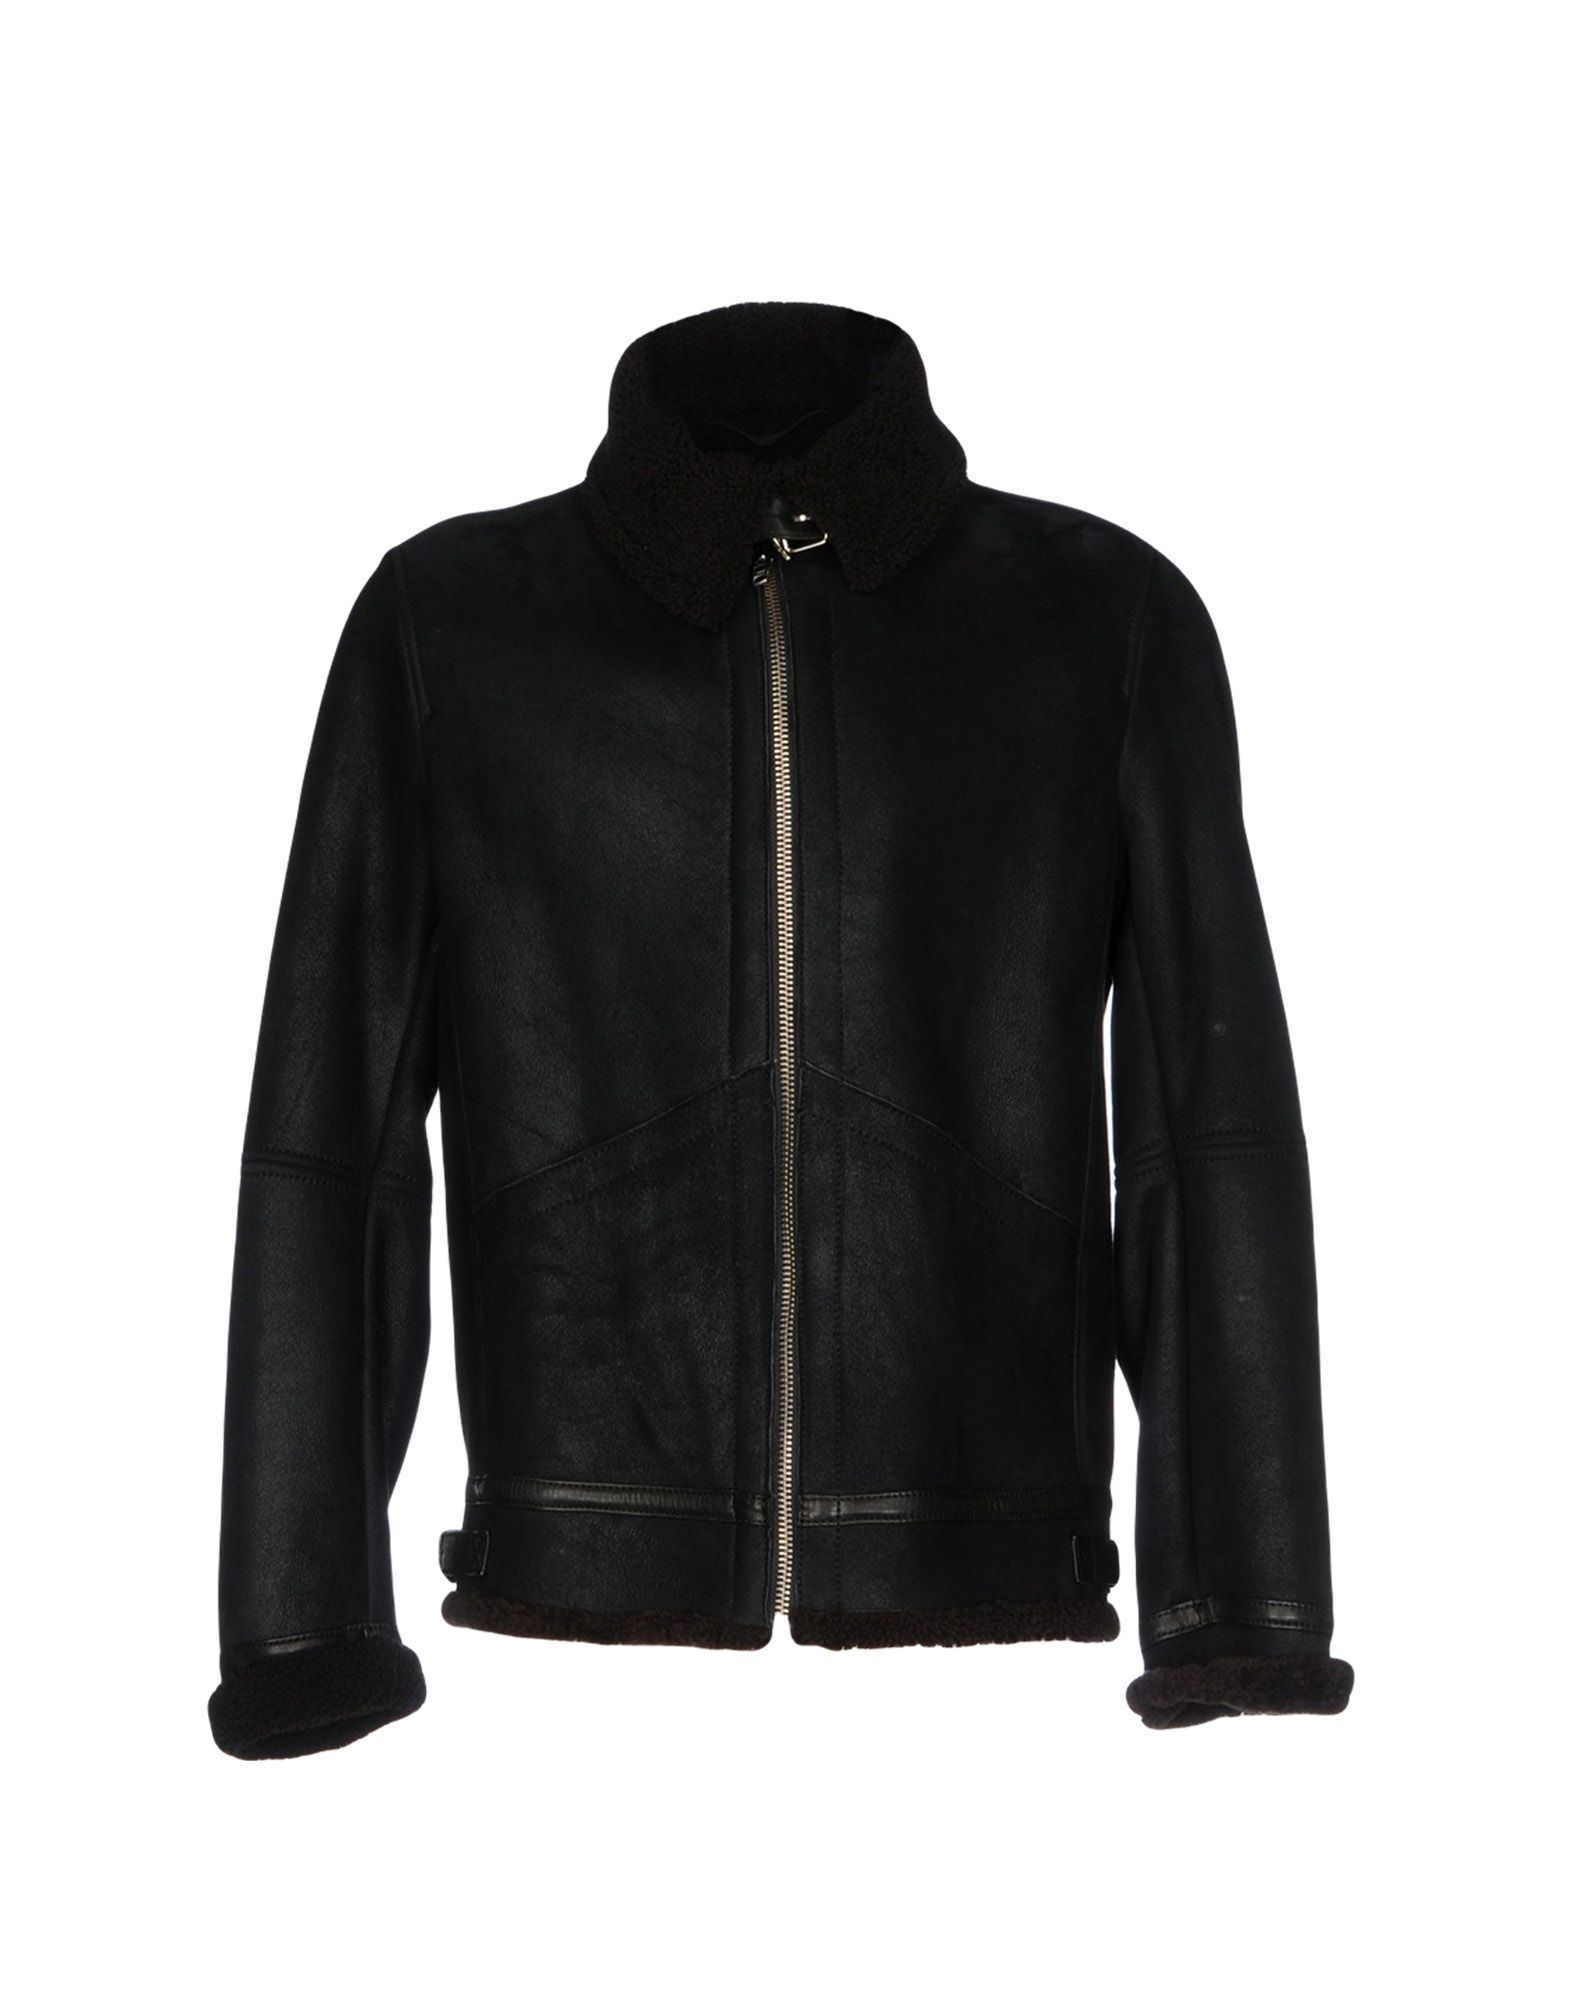 Dondup Black Lambskin Jacket